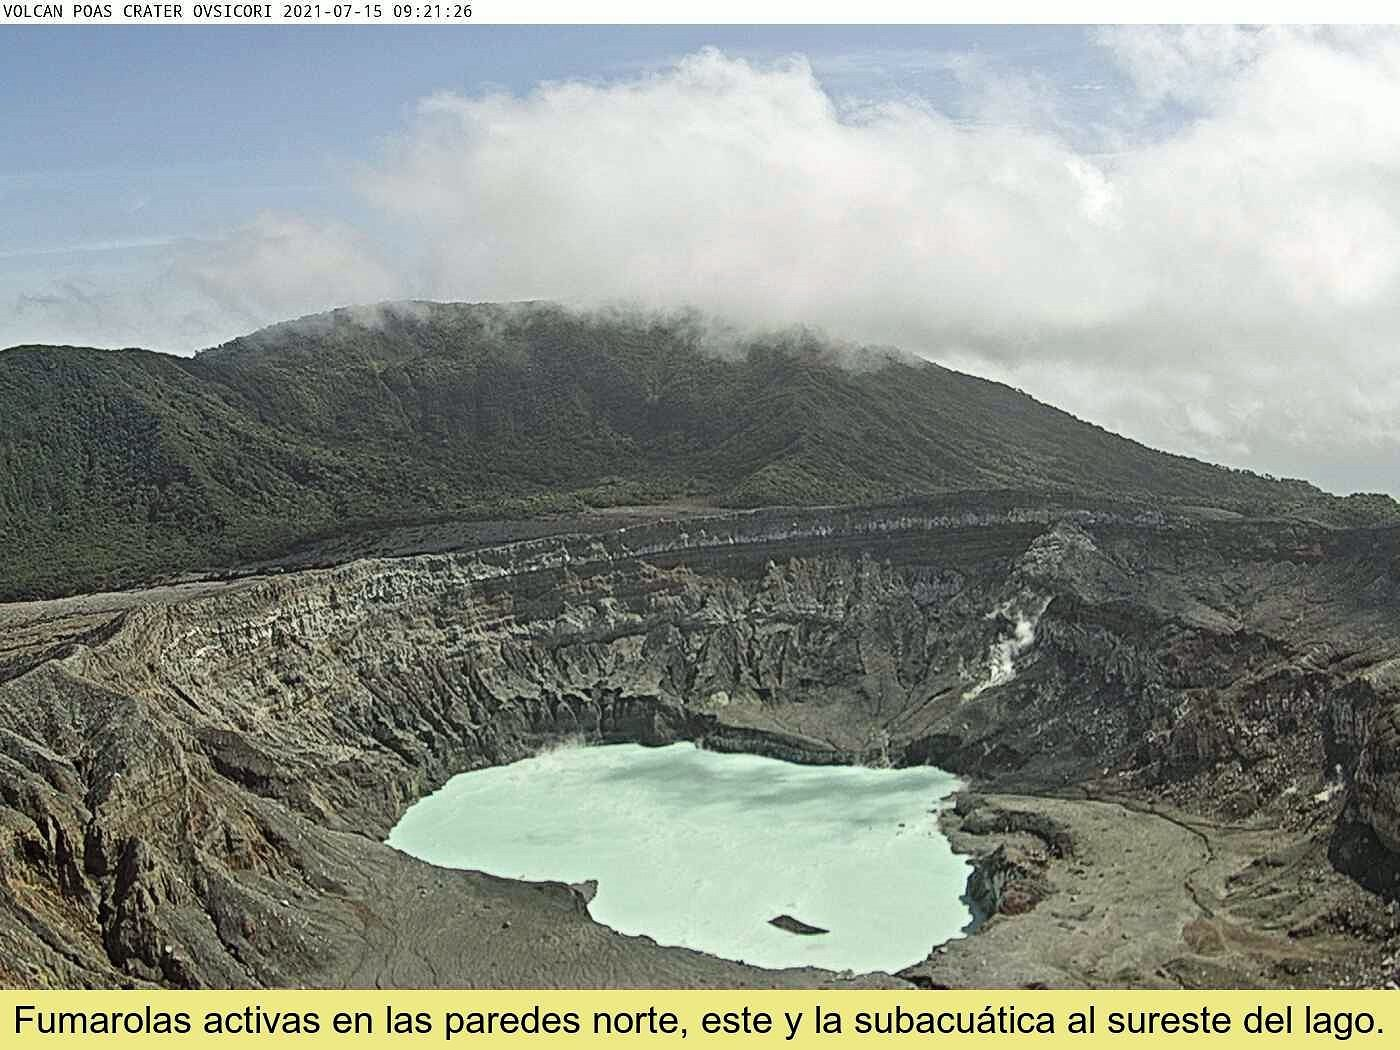 Poas - fumarole on the north inner wall of the crater on 07.15.2021 - Ovsicori webcam